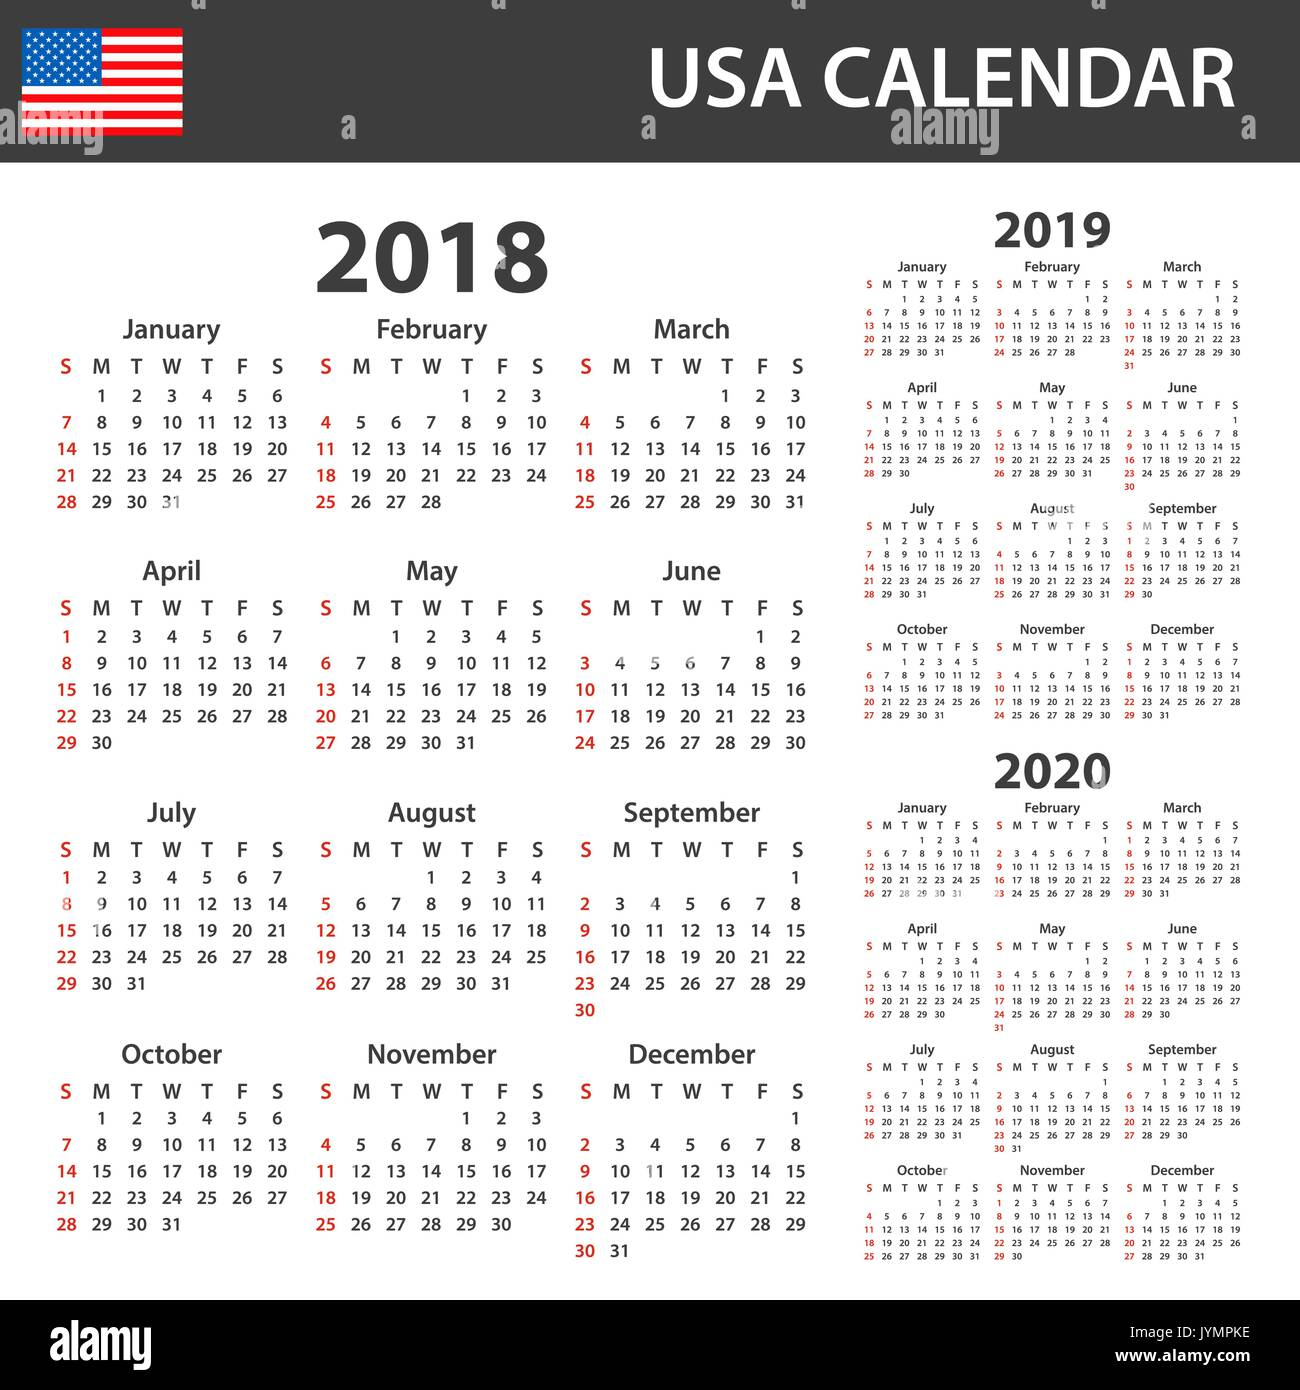 Usa Calendar 2019 USA Calendar for 2018, 2019 and 2020. Scheduler, agenda or diary